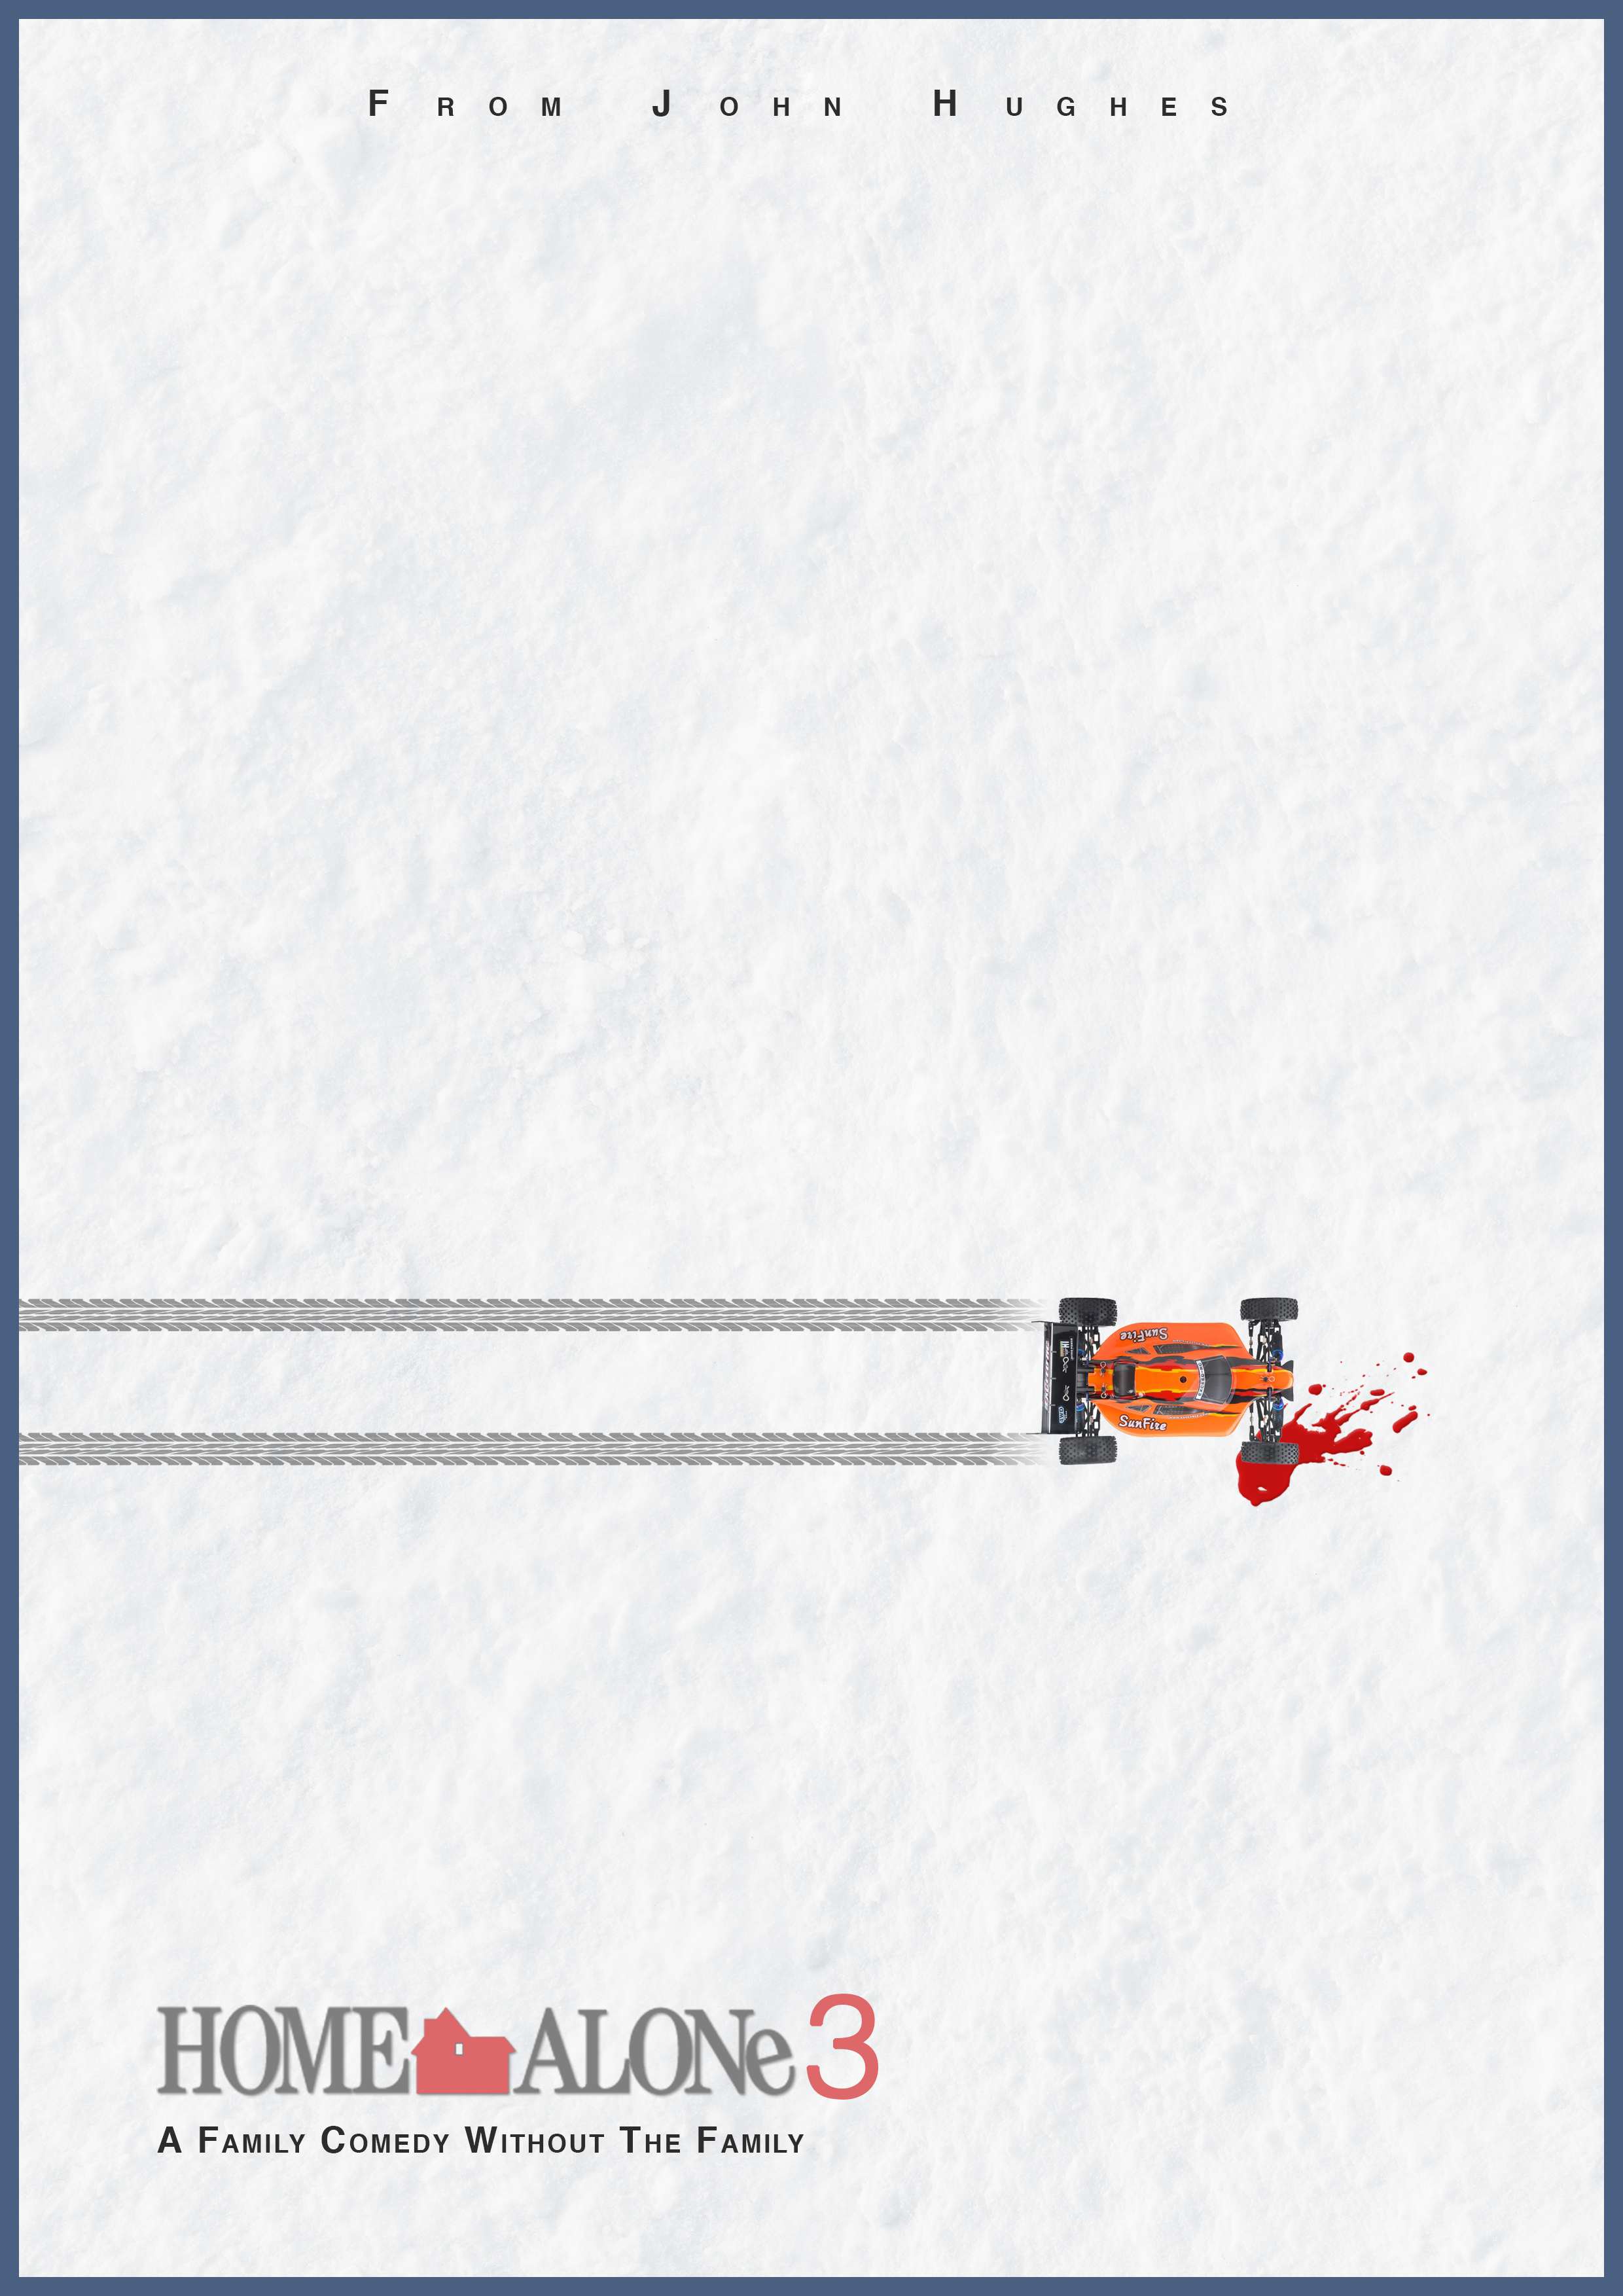 Minimal Poster For Home Alone 3 Home Alone 3 Minimal Poster Minimal Movie Posters